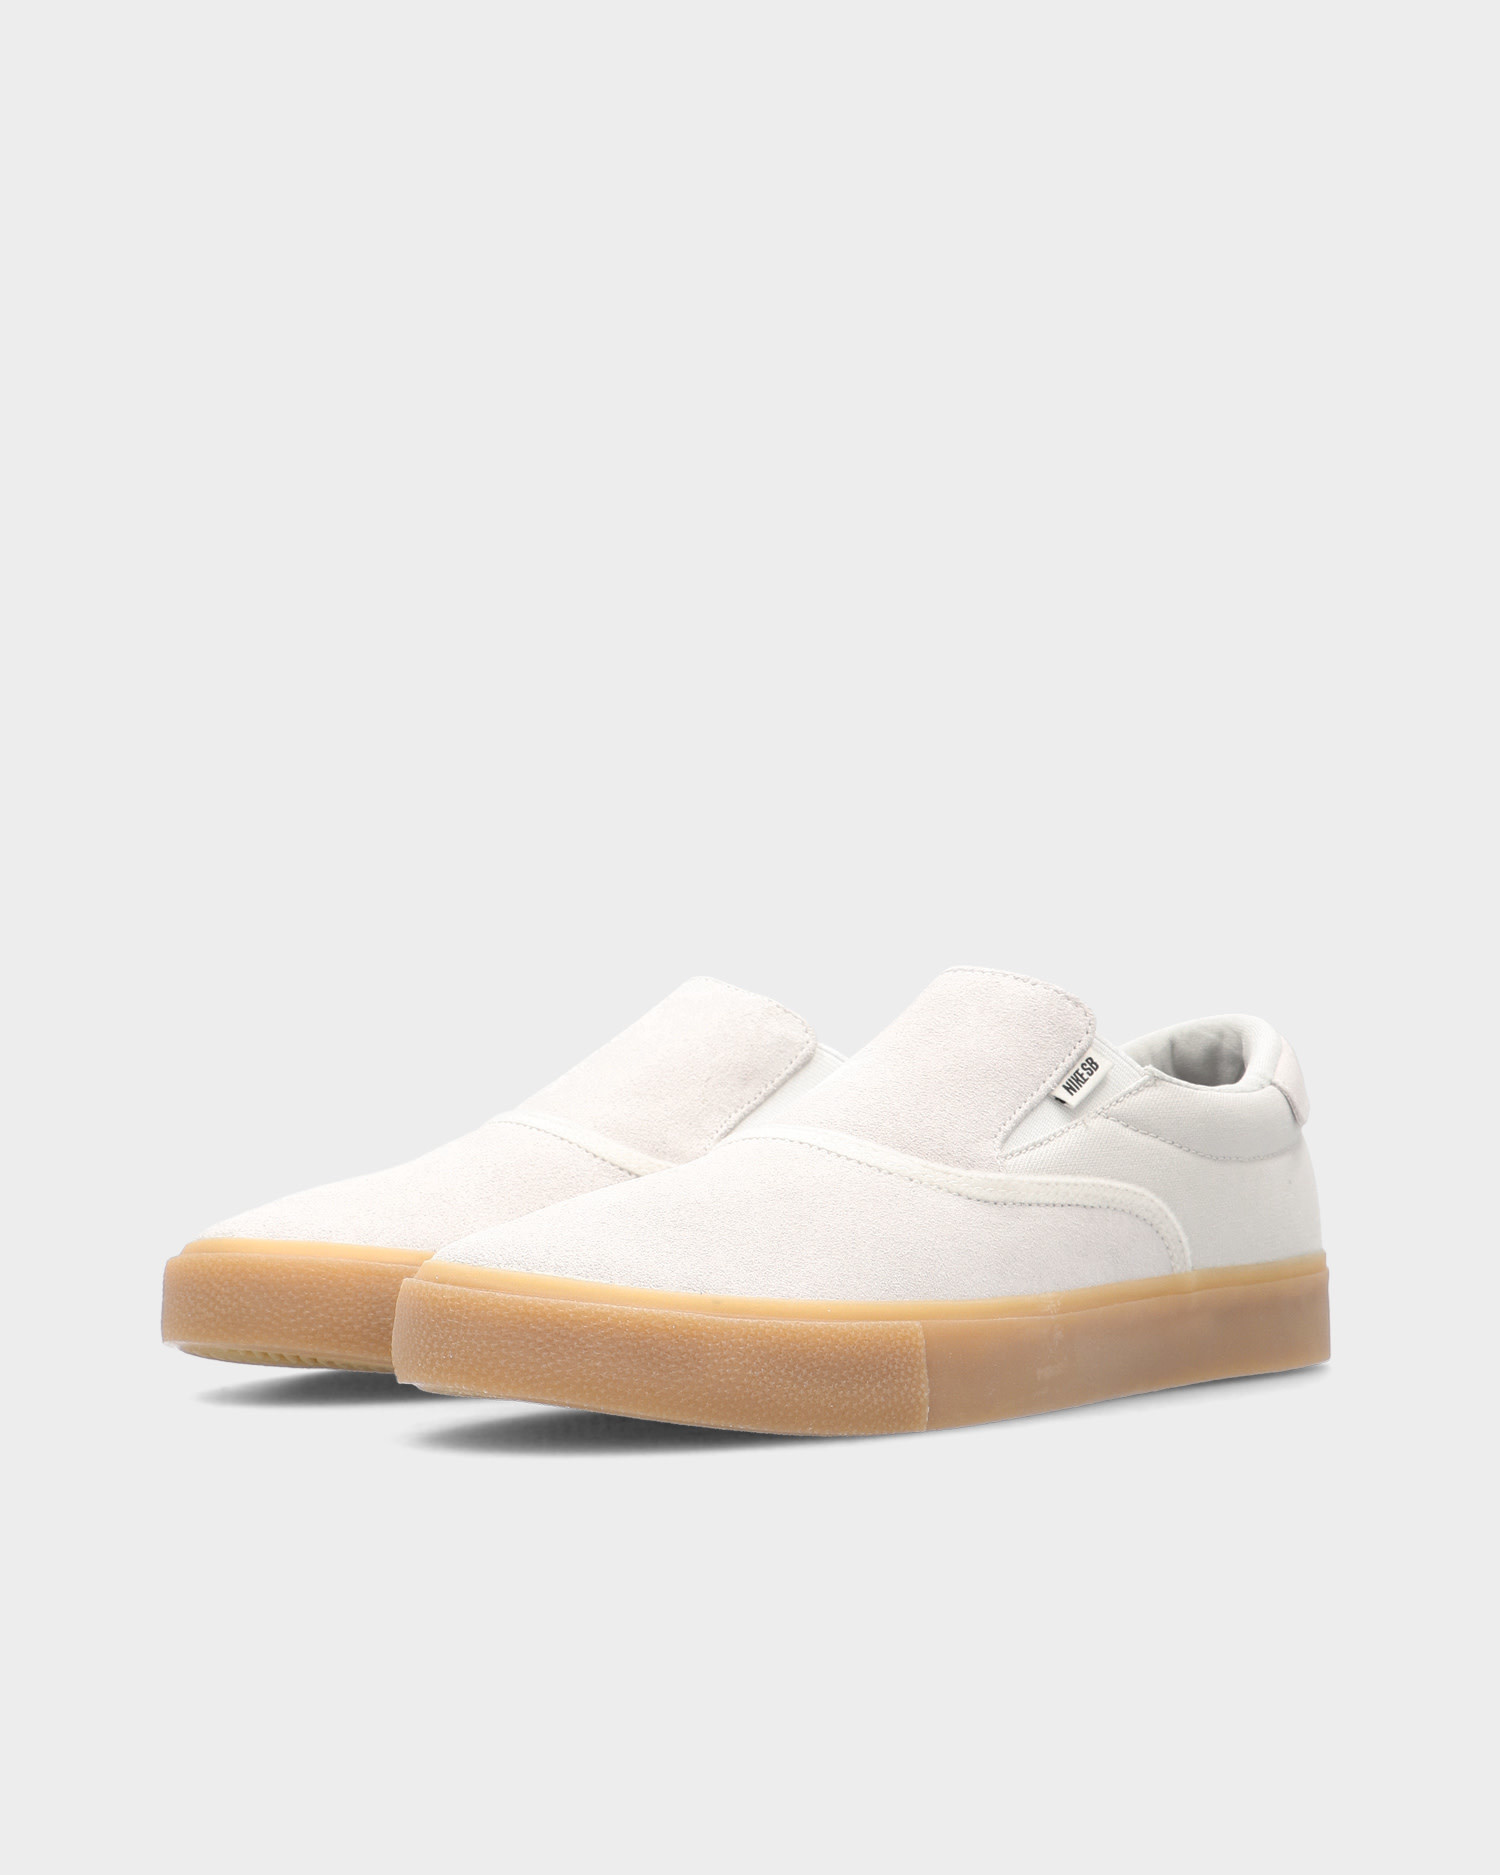 Nike SB Zoom Verona Slip Summit White/Summit White